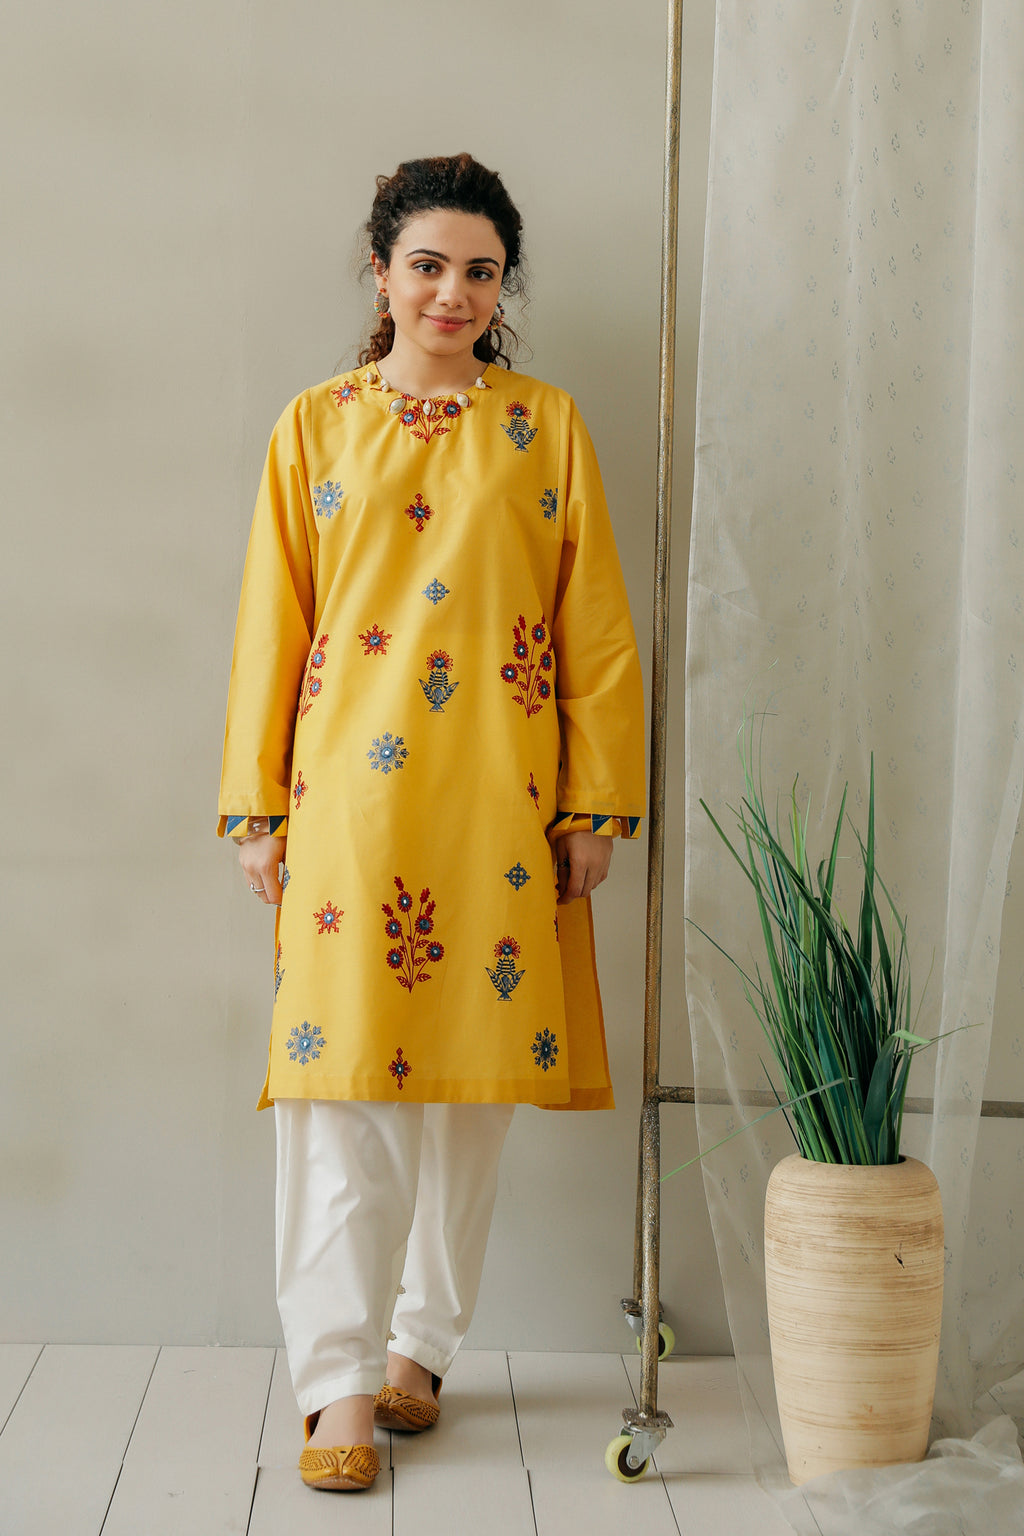 EMBROIDERED SHIRT (WTC111141) - Ethnic by Outfitters